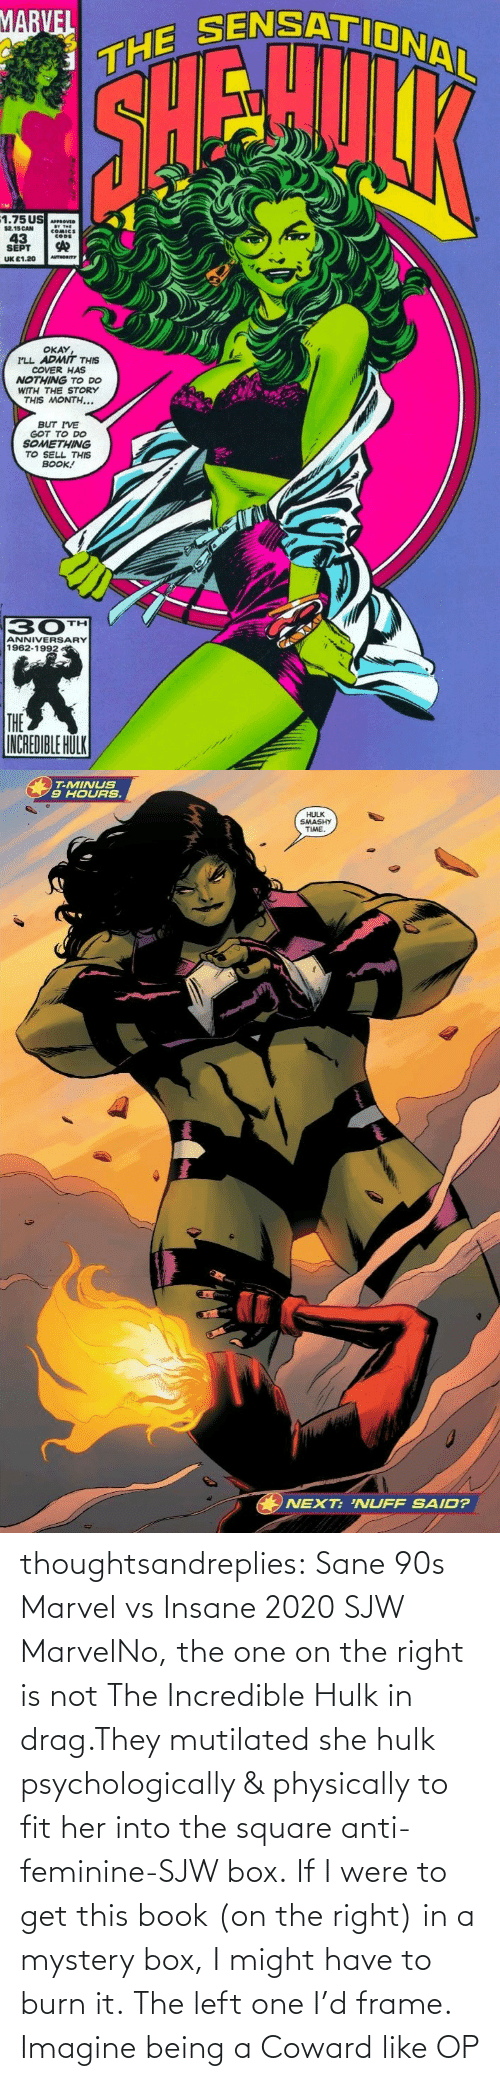 Have To: thoughtsandreplies:  Sane 90s Marvel vs Insane 2020 SJW MarvelNo, the one on the right is not The Incredible Hulk in drag.They mutilated she hulk psychologically & physically to fit her into the square anti-feminine-SJW box. If I were to get this book (on the right) in a mystery box, I might have to burn it. The left one I'd frame.    Imagine being a Coward like OP